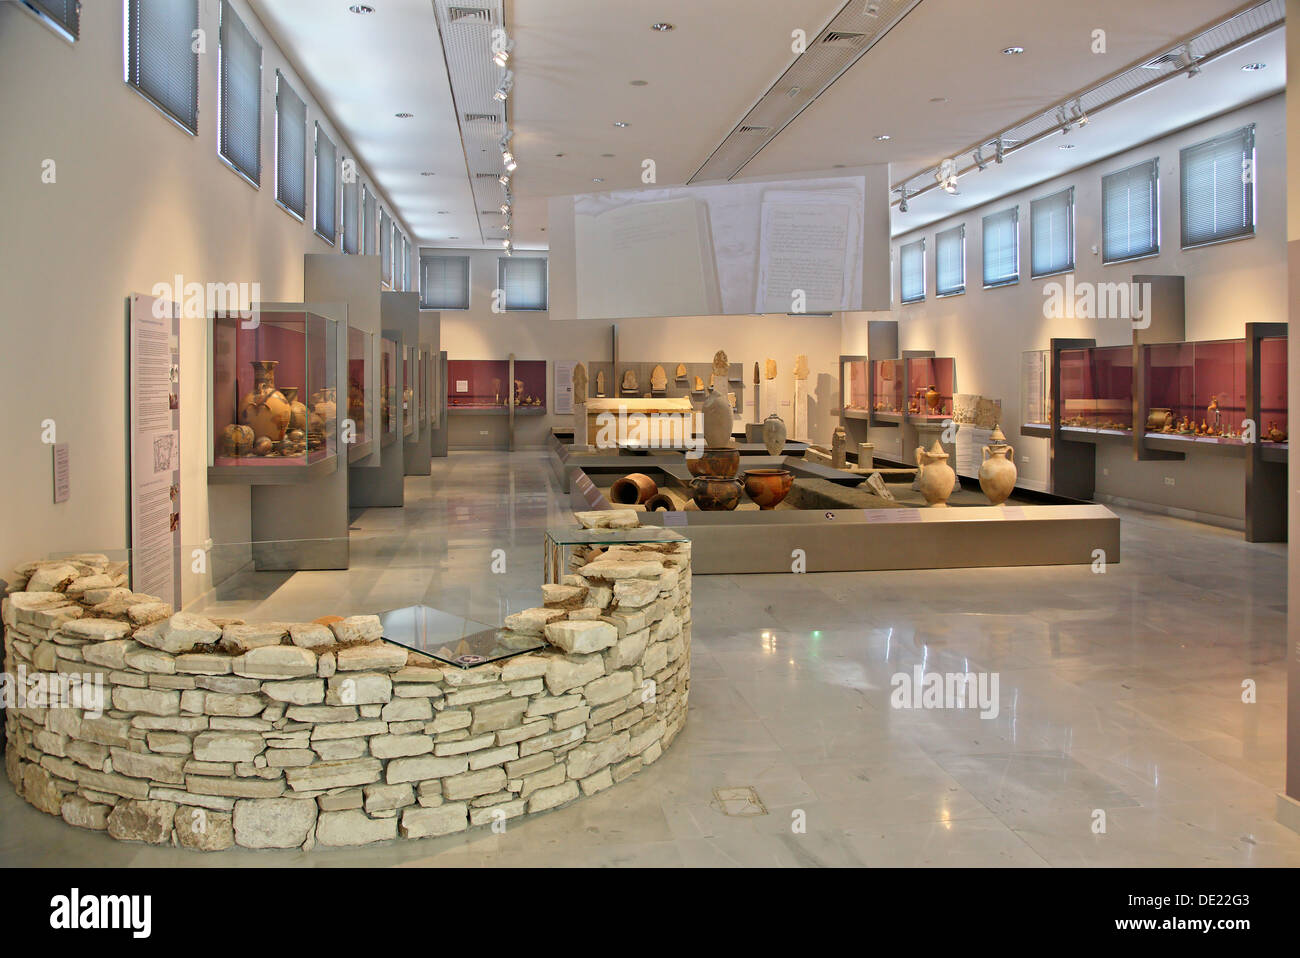 The archaeological museum of Pythagorion, Samos island, Aegean Sea, Greece. Stock Photo